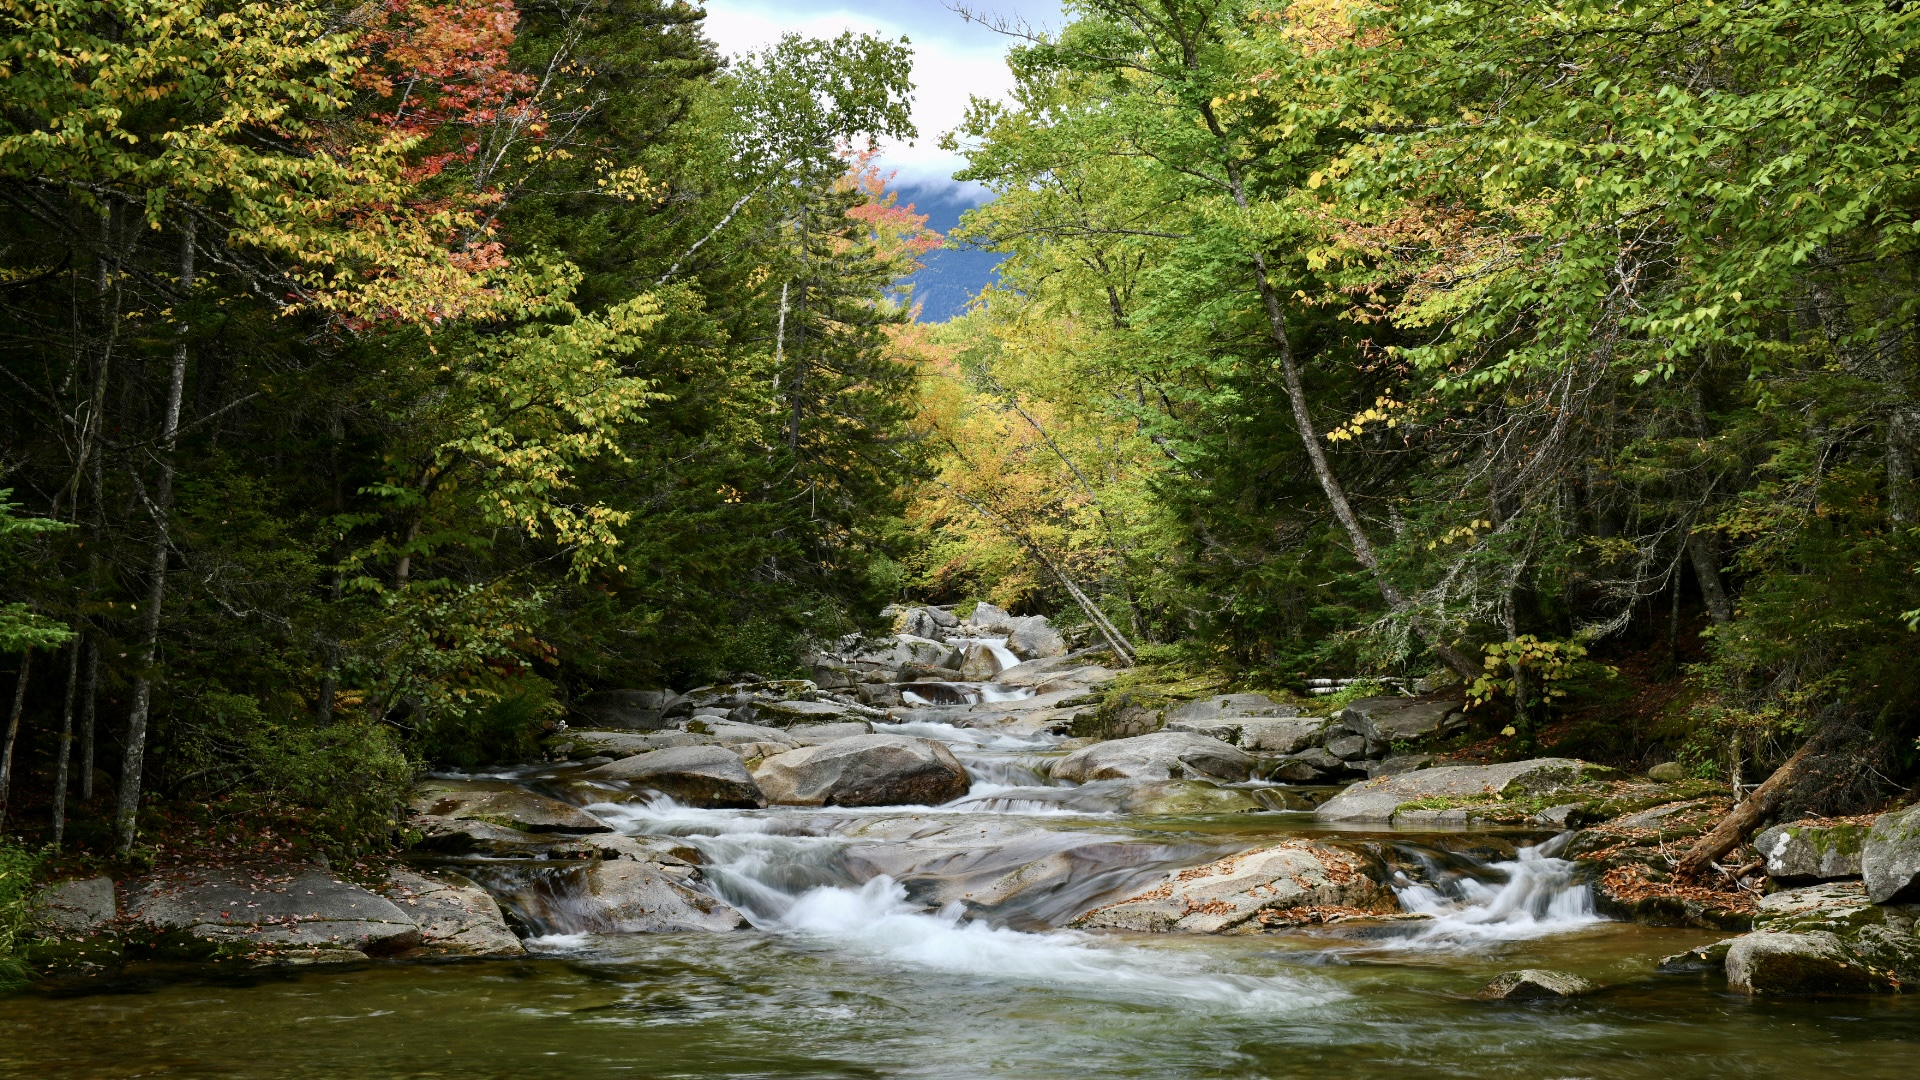 Scene of a river center and autumn colored trees lining it. 2021. Taryn Okesson. Digital Photography. White Mountain National Forest, New Hampshire.